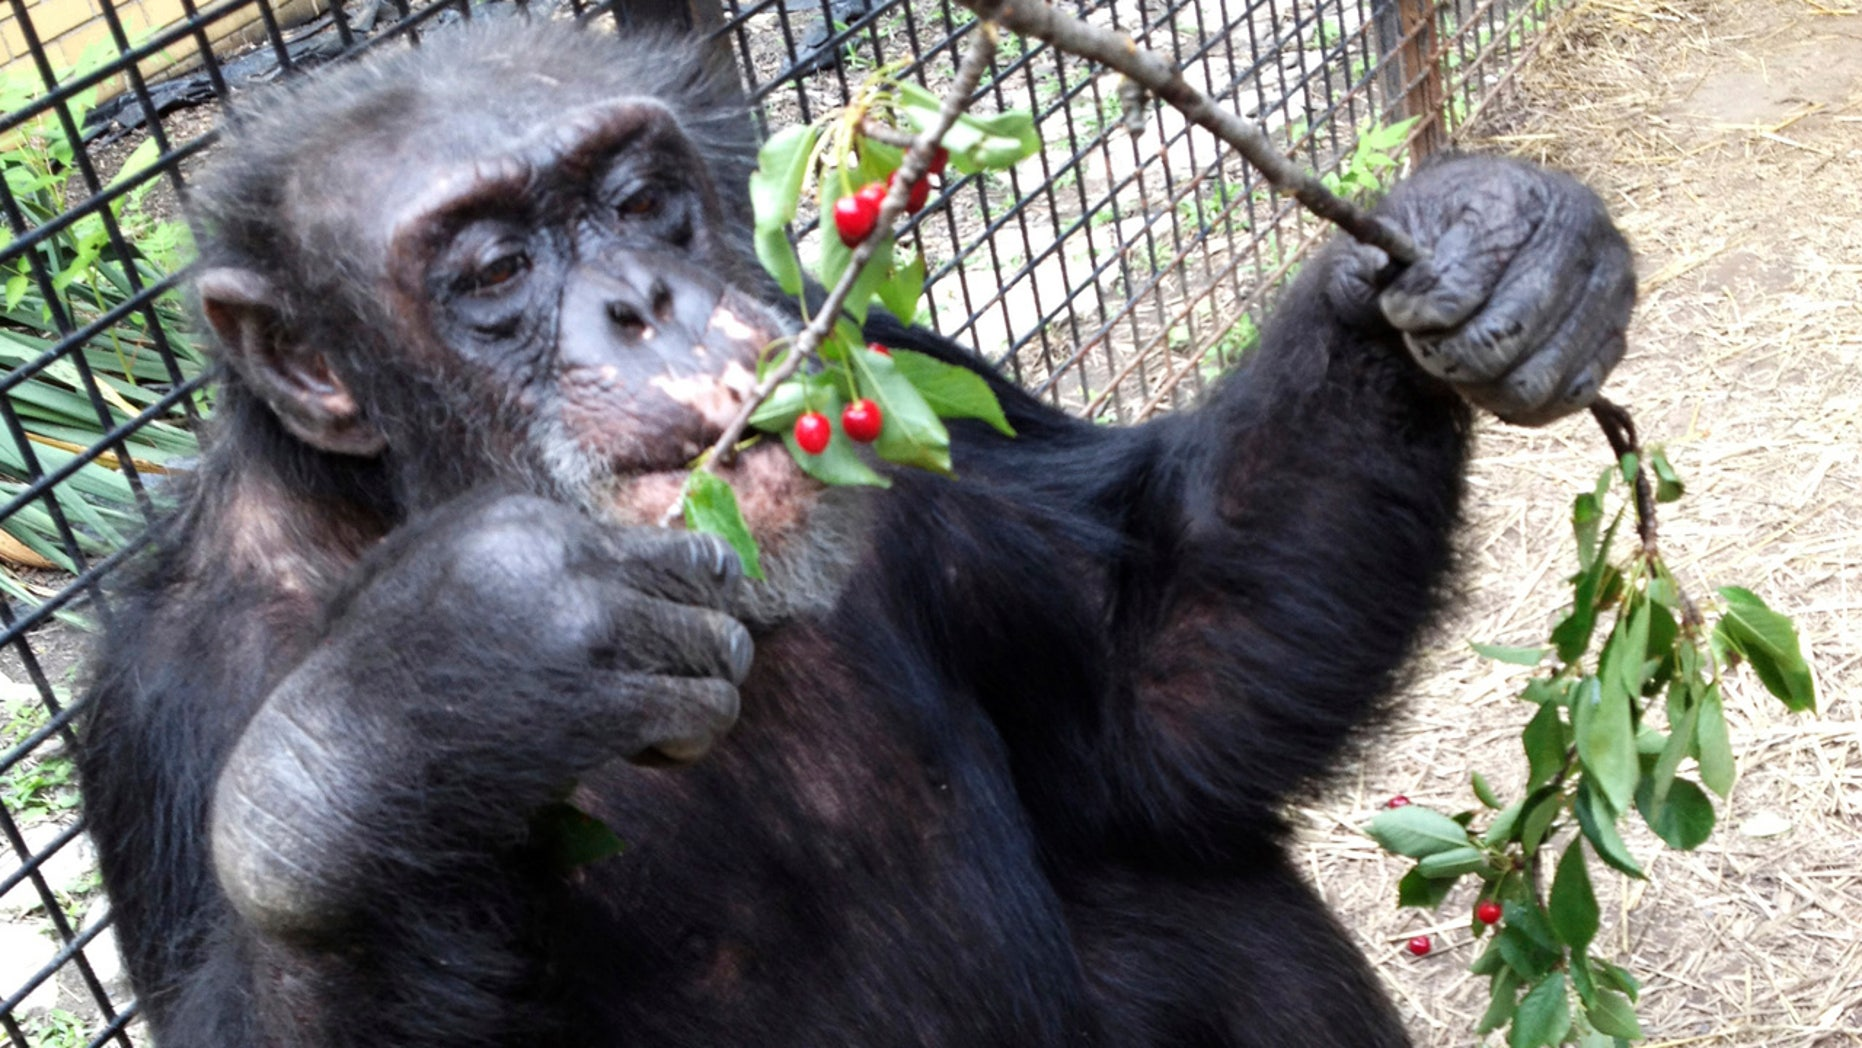 In this July 2013 photo provided by the Primate Sanctuary, the chimpanzee Kiko eats wild cherries at the nonprofit Primate Sanctuary in Niagara Falls, N.Y.